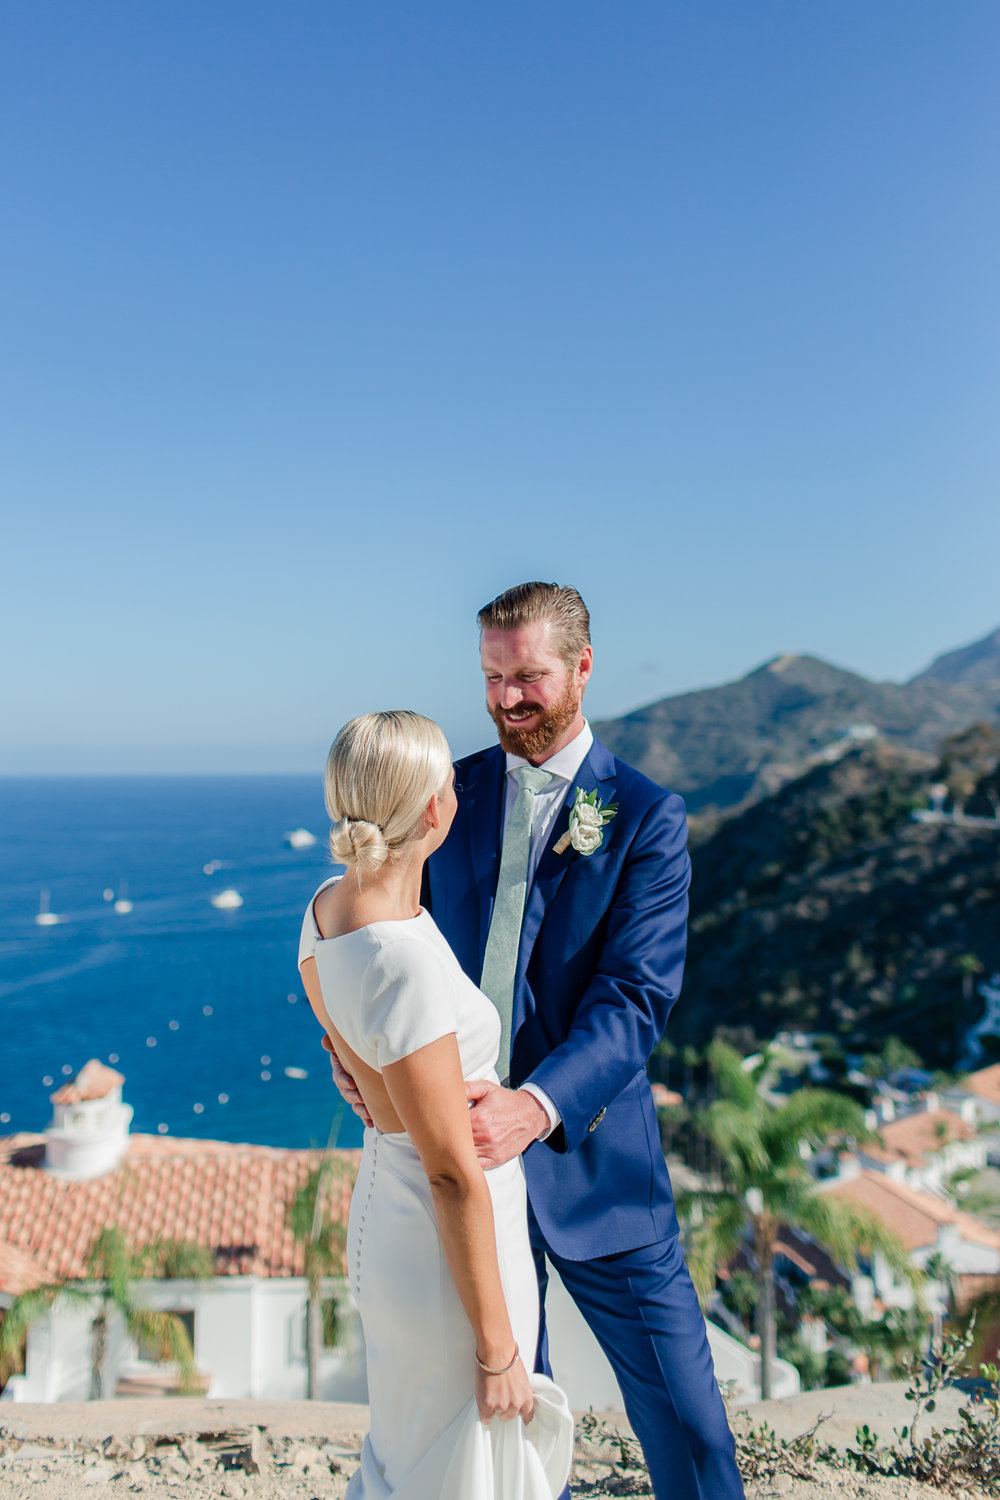 Absolutely perfect day for bride and groom's Catalina Island Wedding